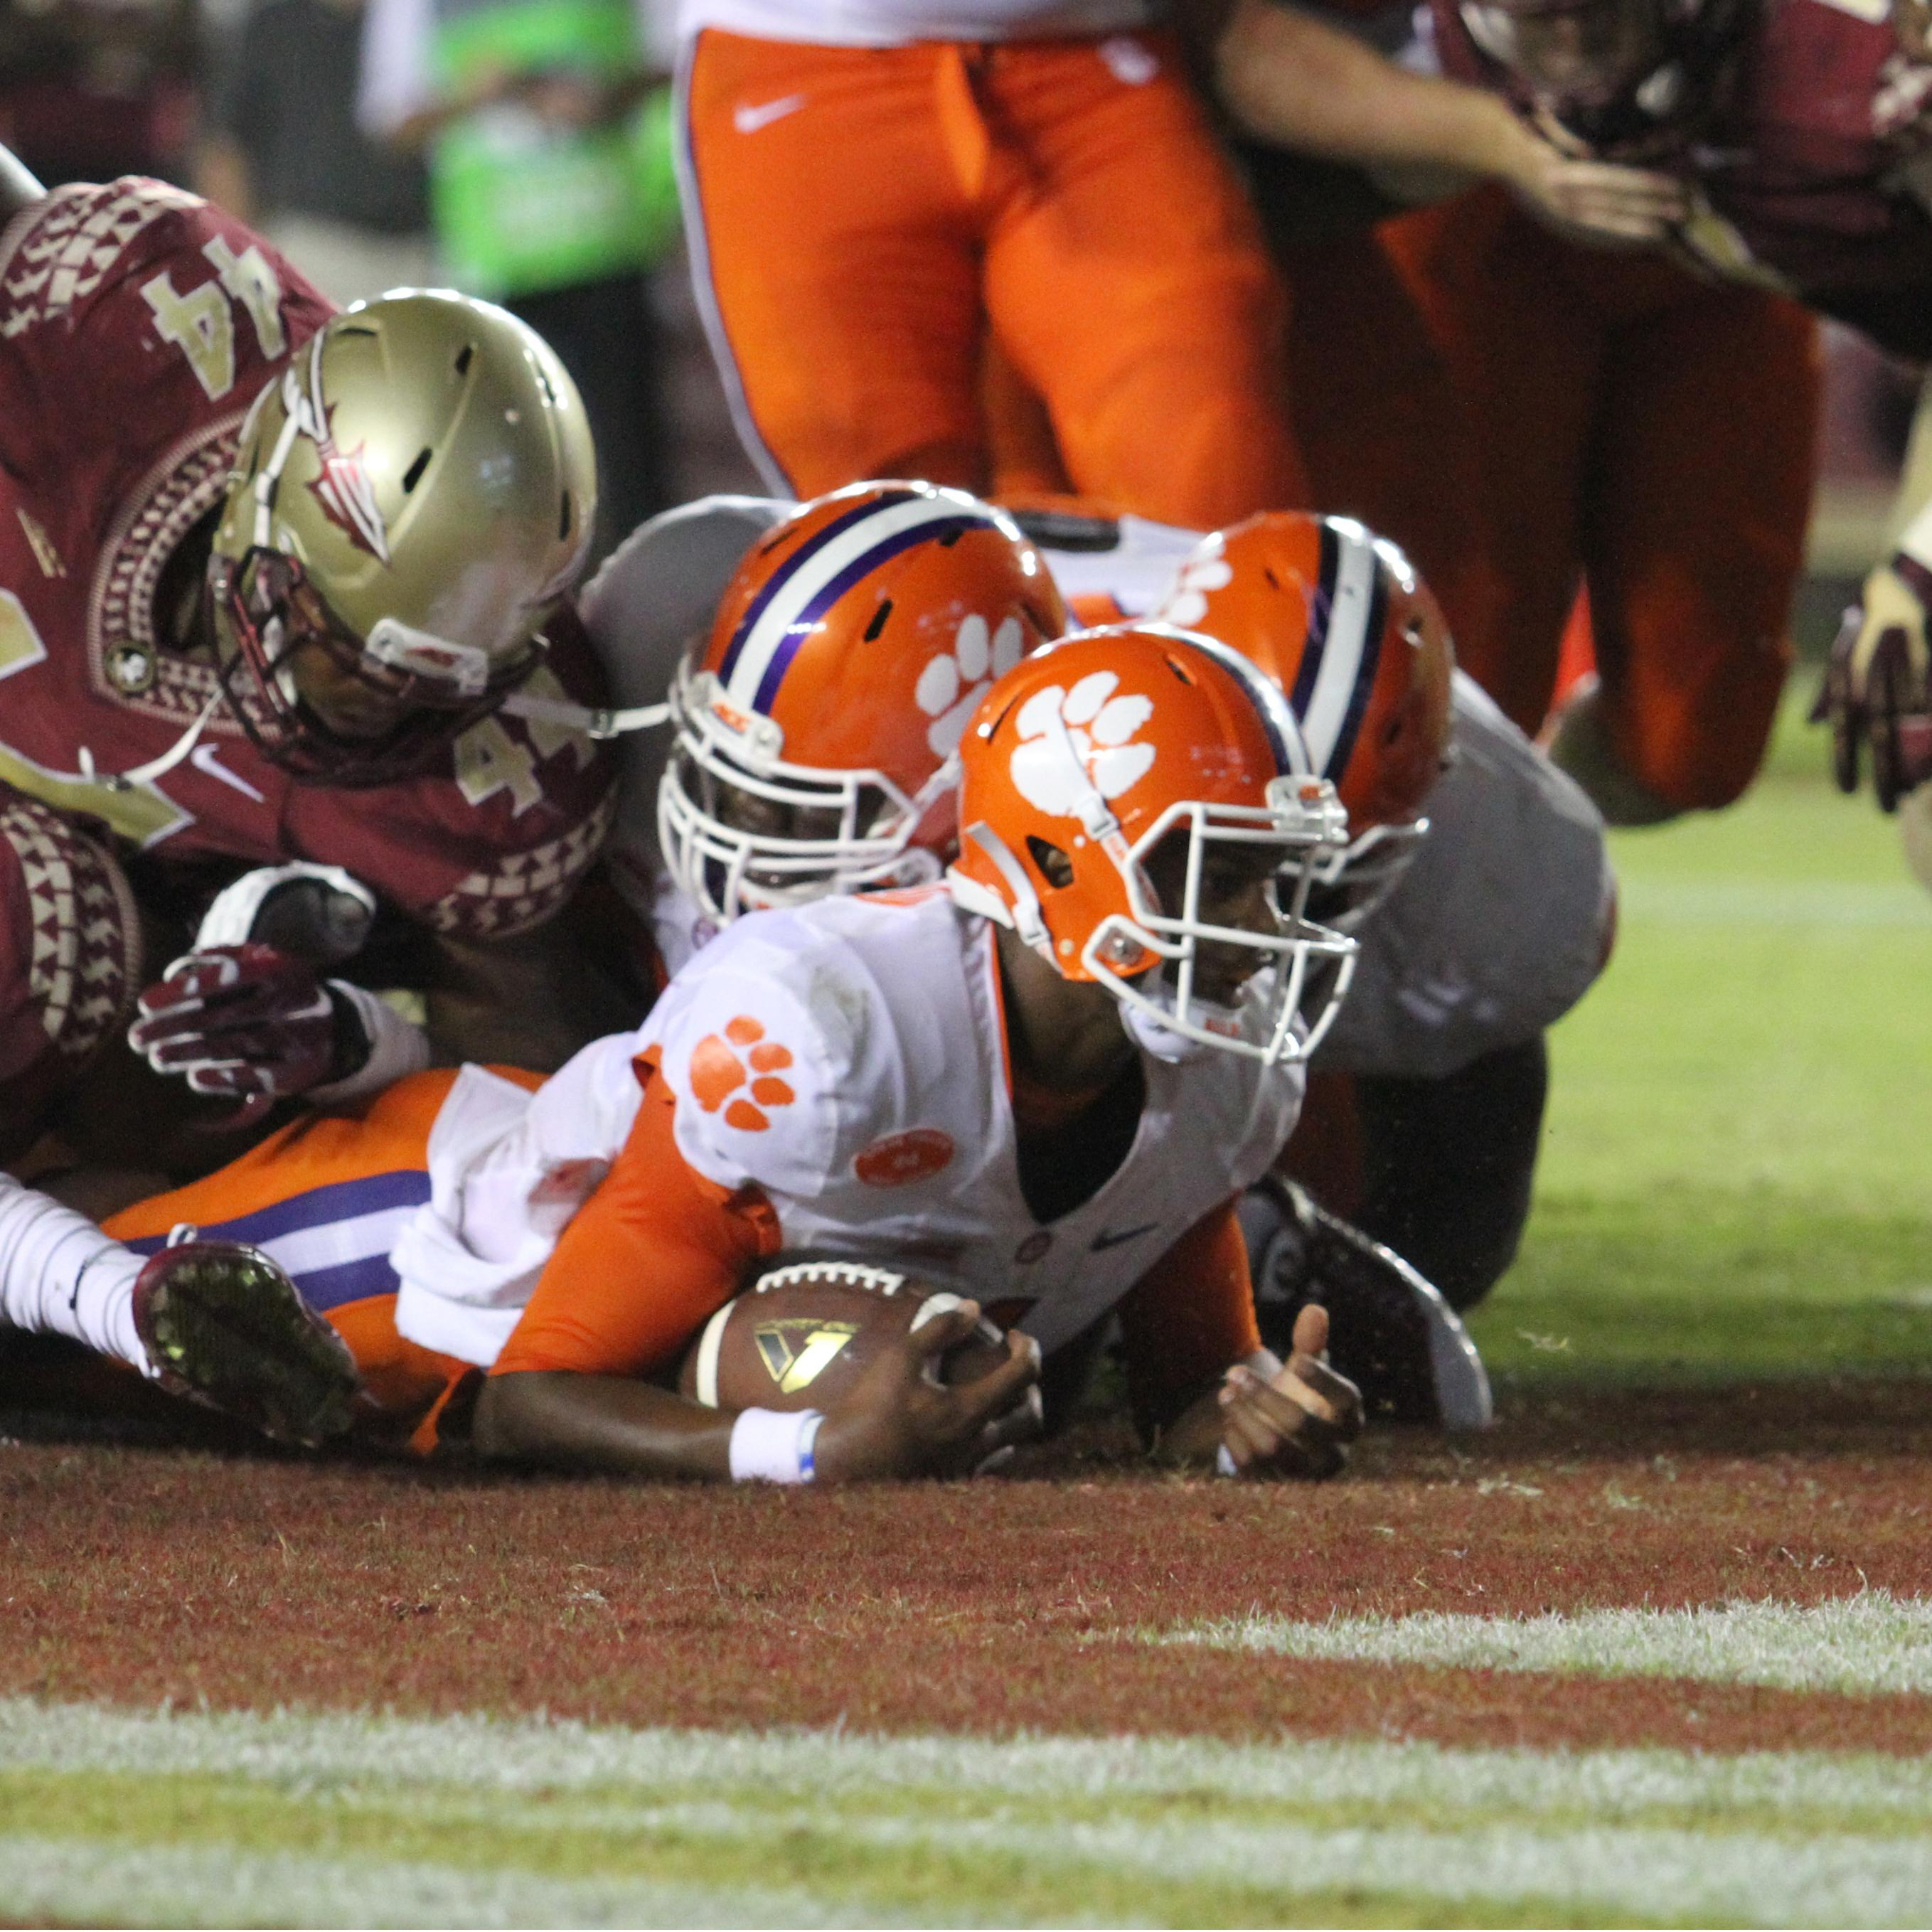 Tigers Fall at No. 1 FSU